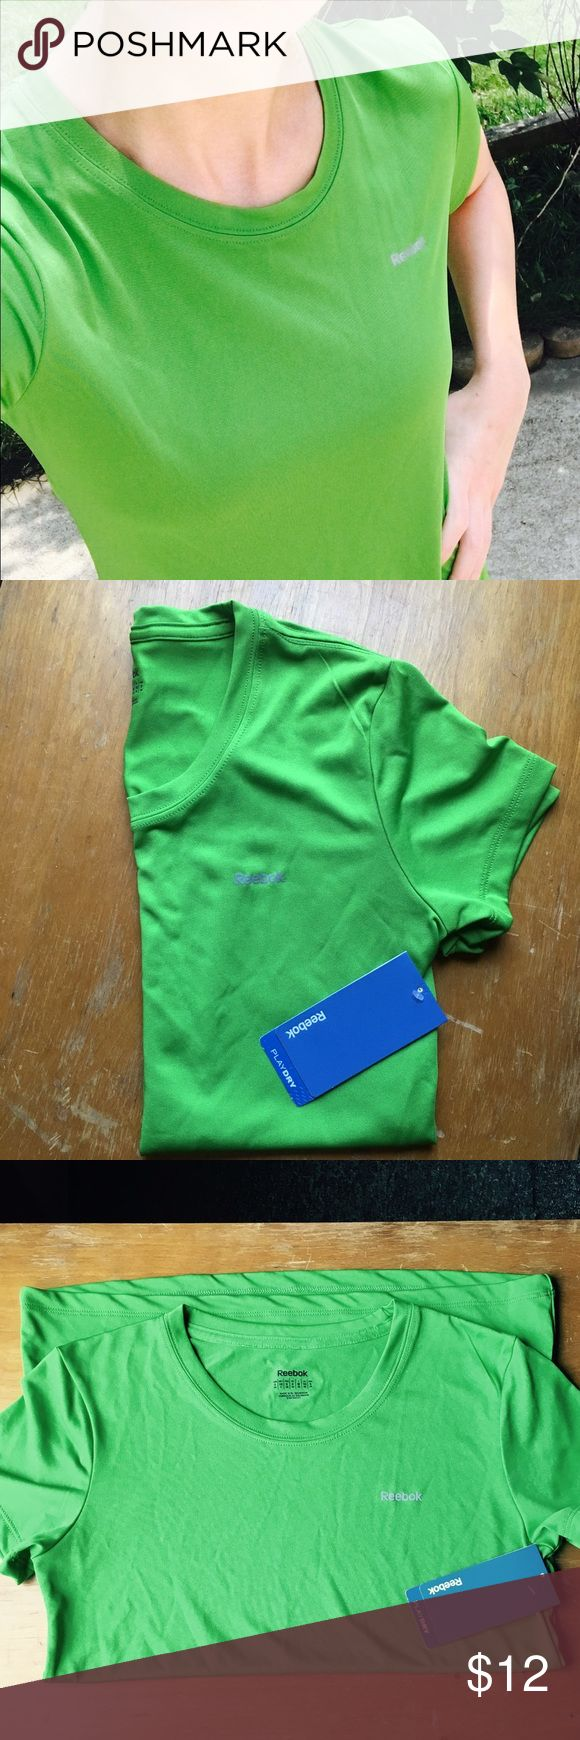 REDUCED FOR QUICK SALE Reebok Workout Tee This is a Reebok Workout Tee. It has a classic crew neck, and a slightly tapered torso, which is very flattering on. It's in a bright green color, which is represented well in the pictures above. NEVER WORN! STILL HAS TAGS ON! Reebok Tops Tees - Short Sleeve